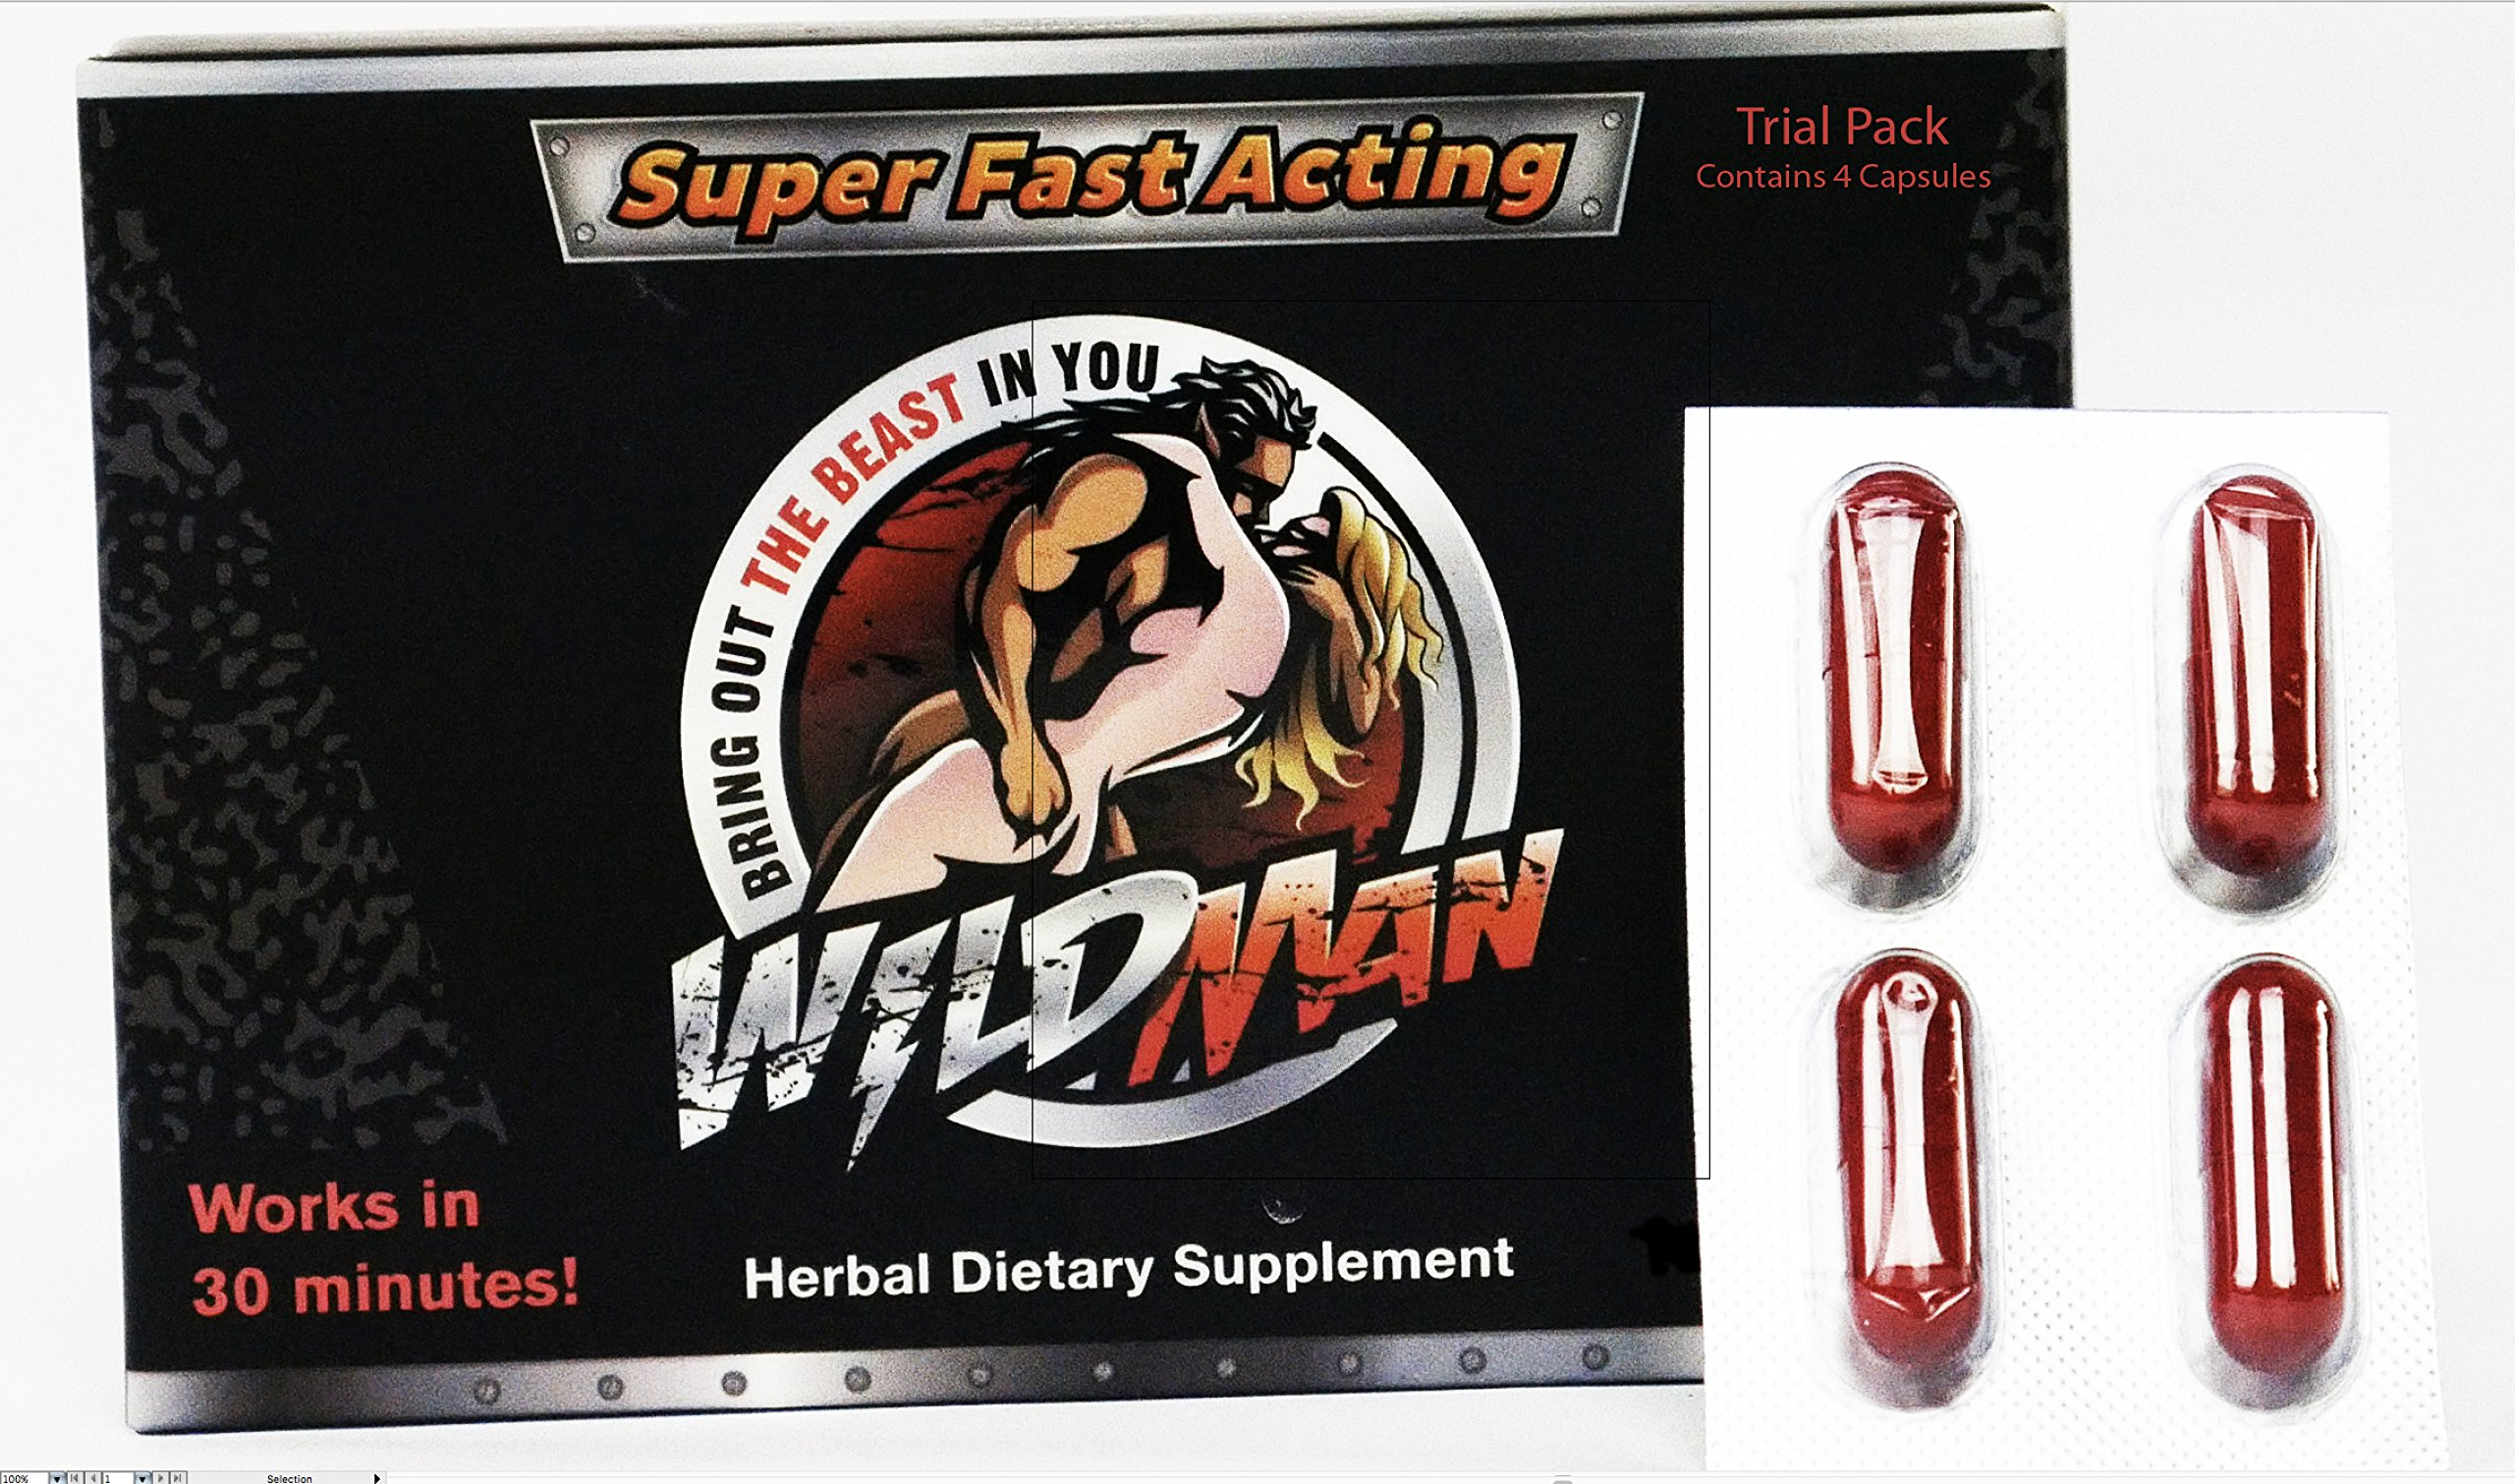 WILDMAN NEW NATURAL MALE PERFORMANCE by the makers of SCHWINNNG Trial Pack (4) Capsules